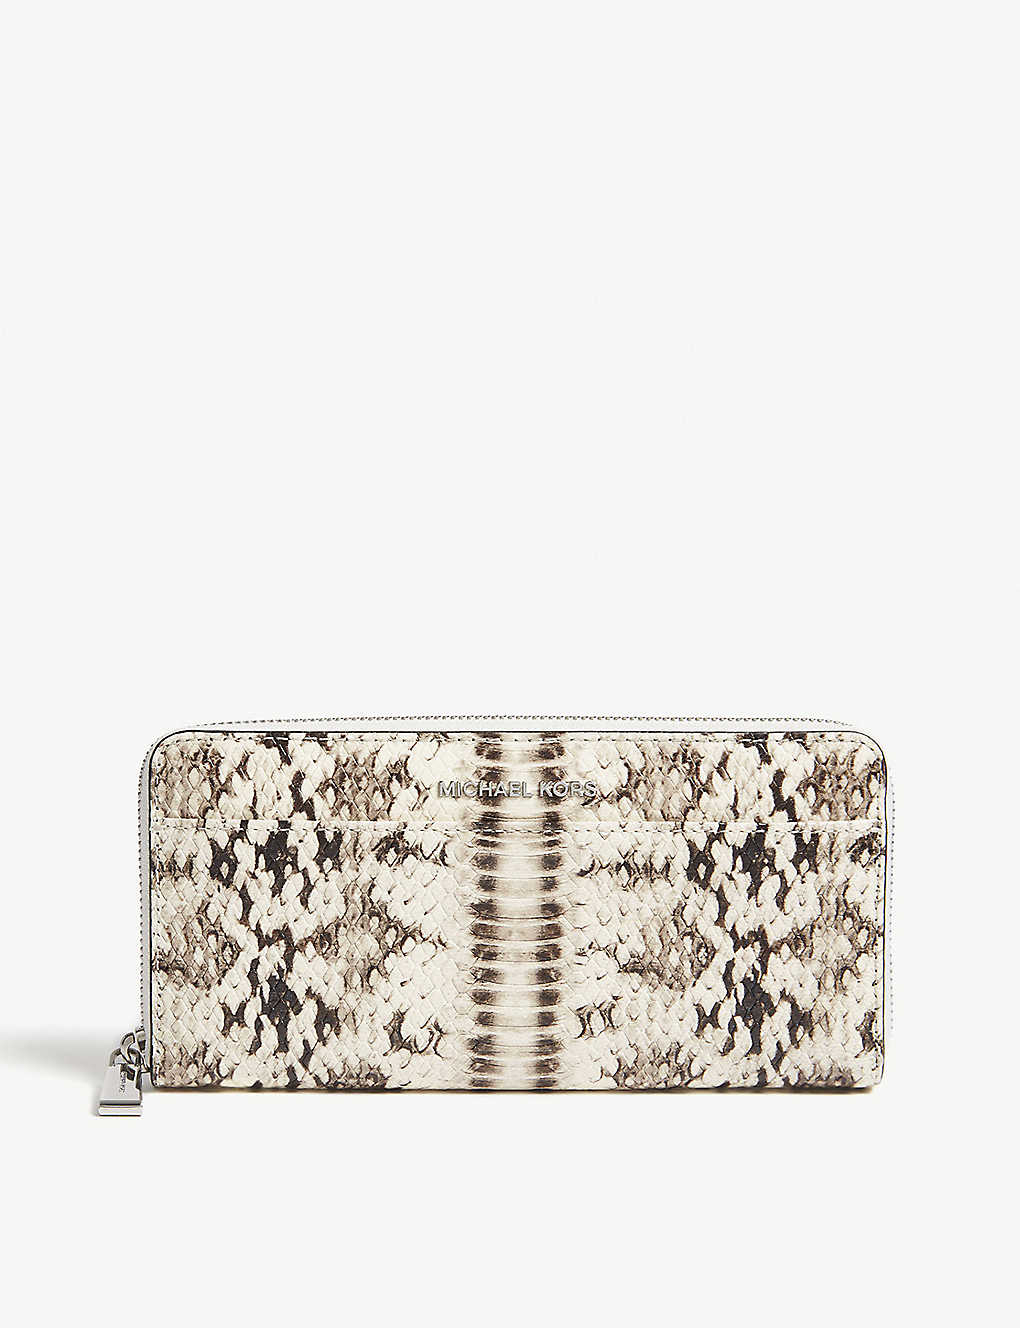 MICHAEL MICHAEL KORS - Money Pieces snake-embossed leather ... a3f2226417